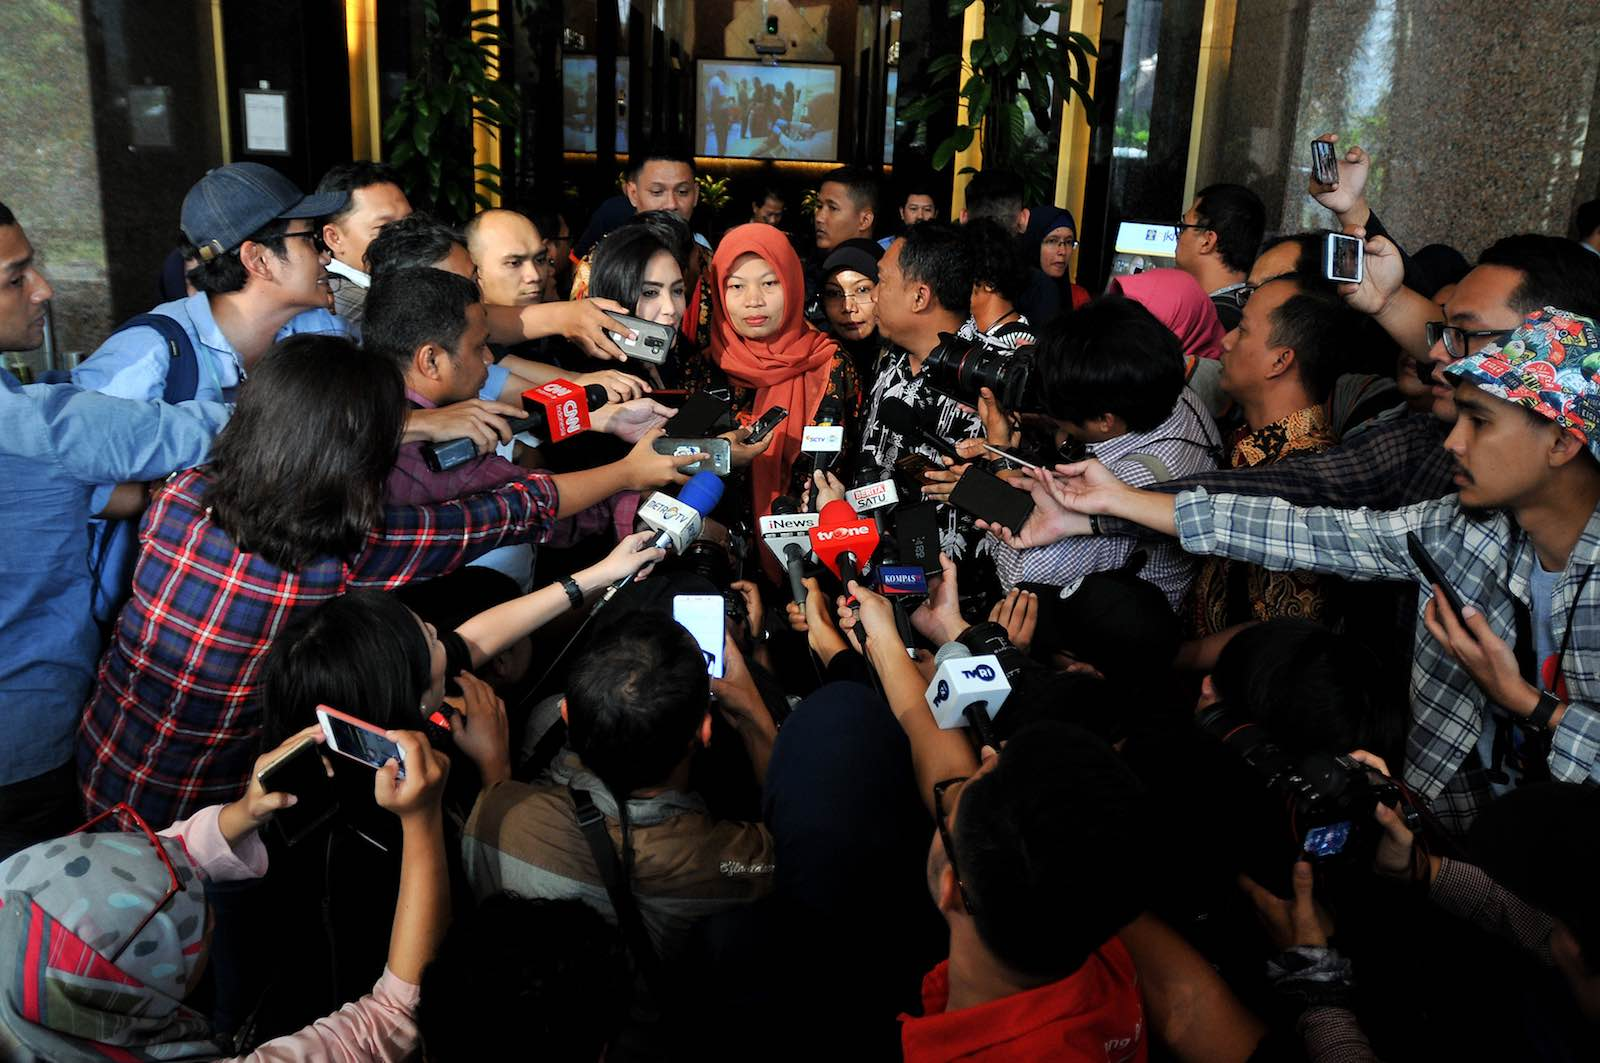 Baiq Nuril following a meeting with Indonesia's Minister of Law and Human Rights Yasonna Laoly last month (Photo: Dasril Roszandi via Getty)